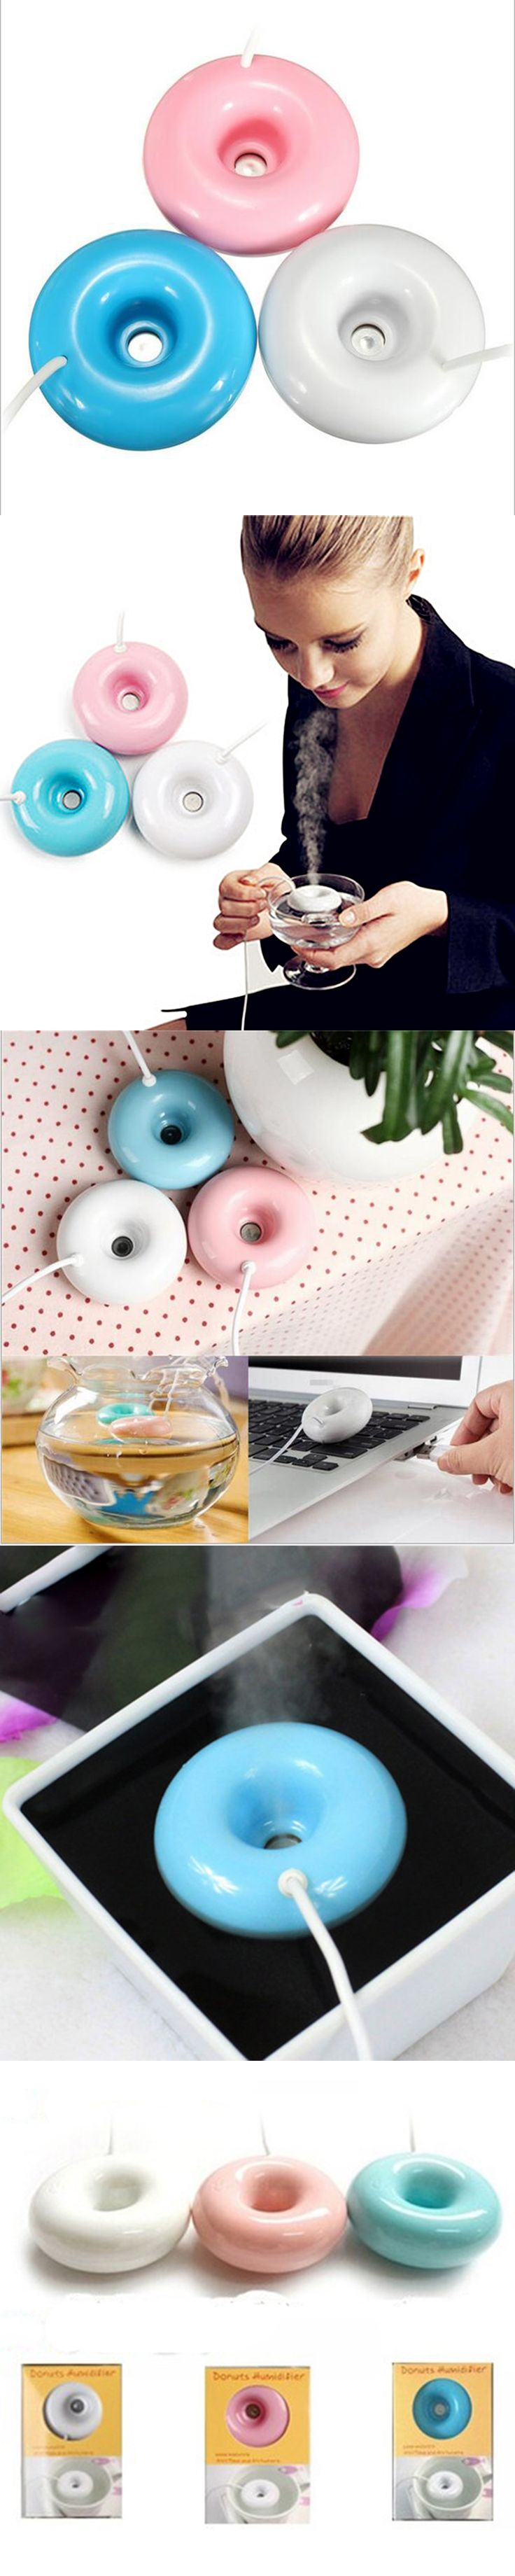 2017 Third Generation Donuts USB Mini Air Ultrasonic Humidifier Water Diffuser Mist Maker Fogger DC 5V Portable Air Purifier